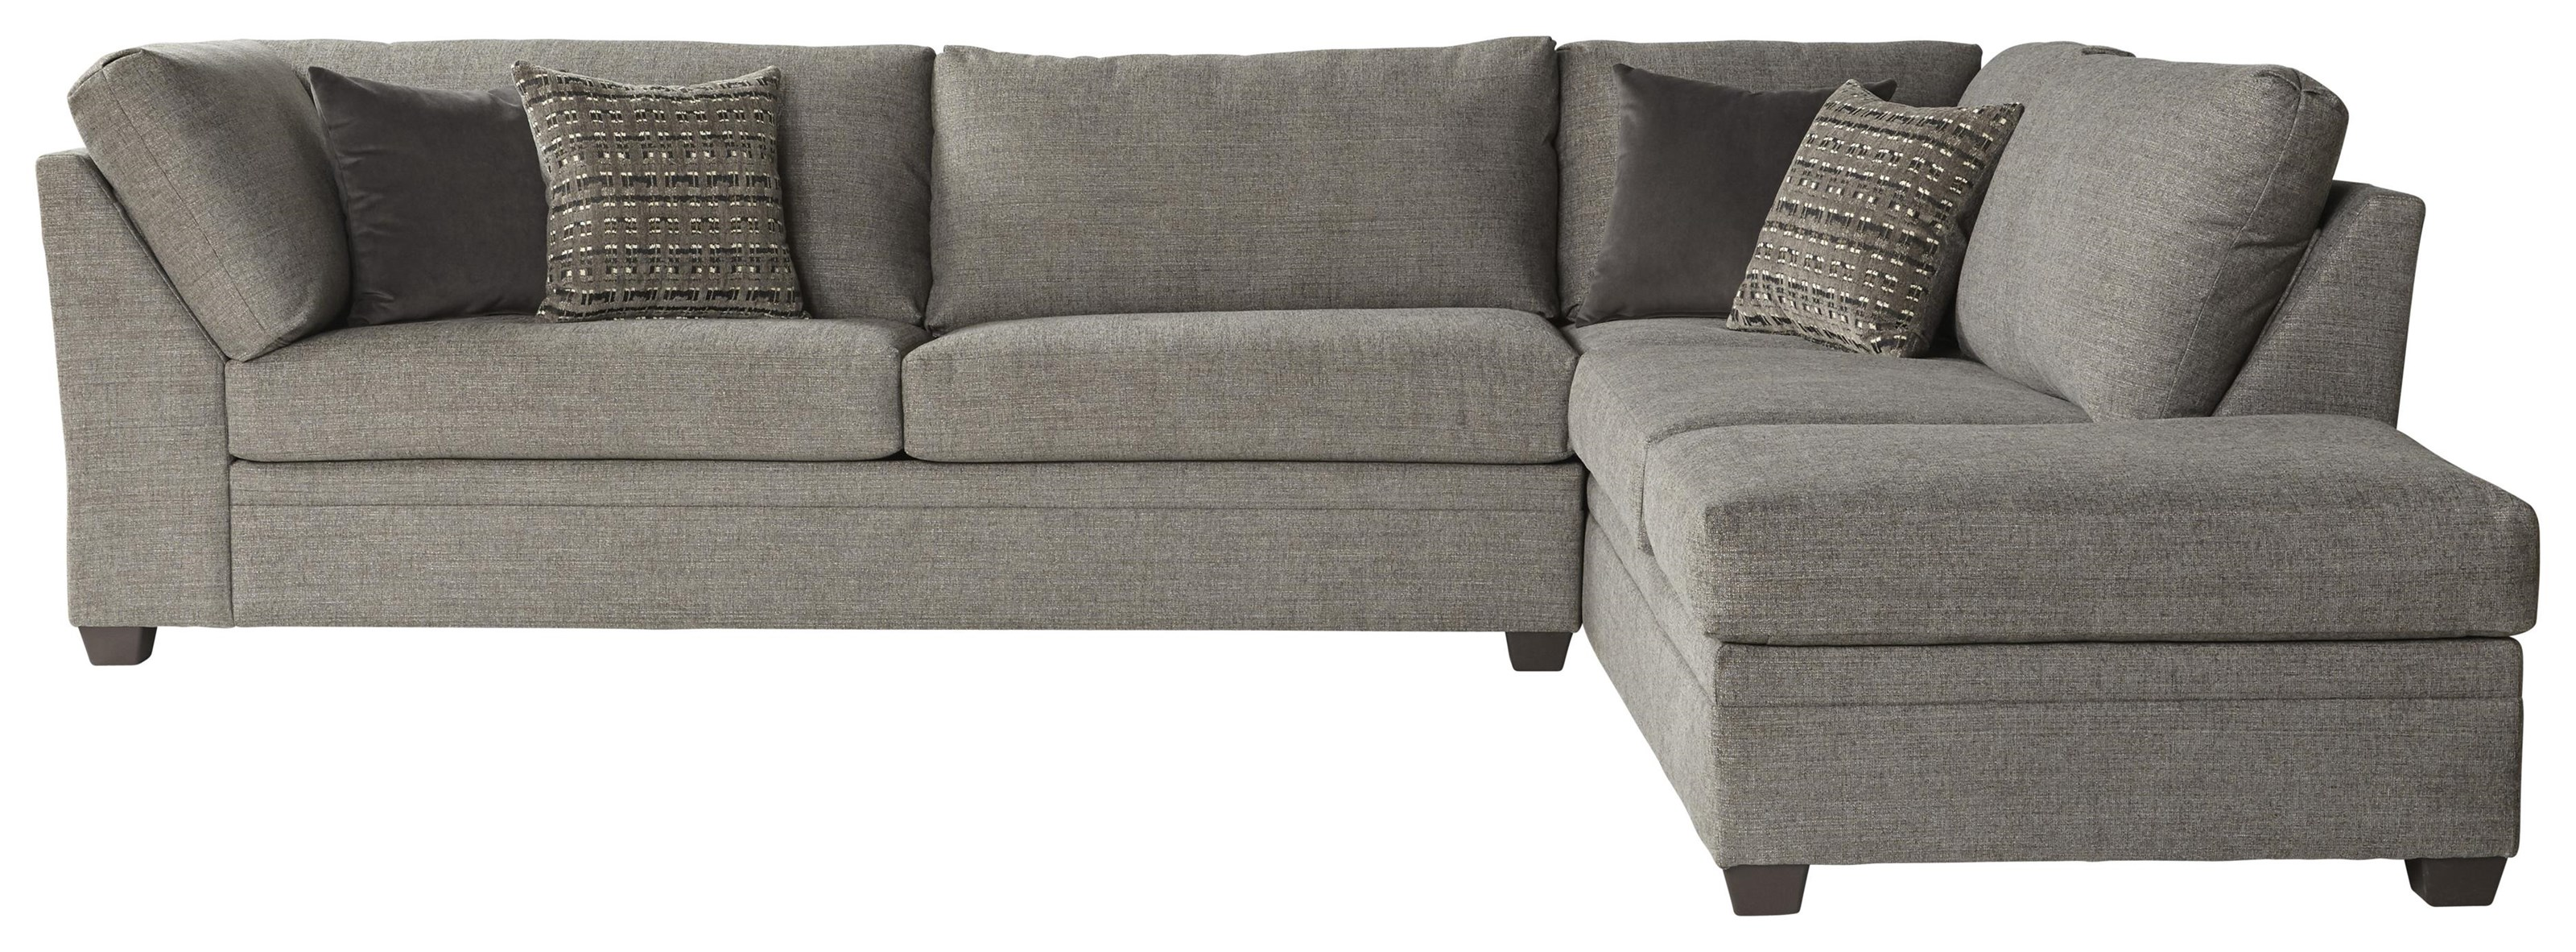 14500 2 Piece Sectional by Serta Upholstery by Hughes Furniture at VanDrie Home Furnishings